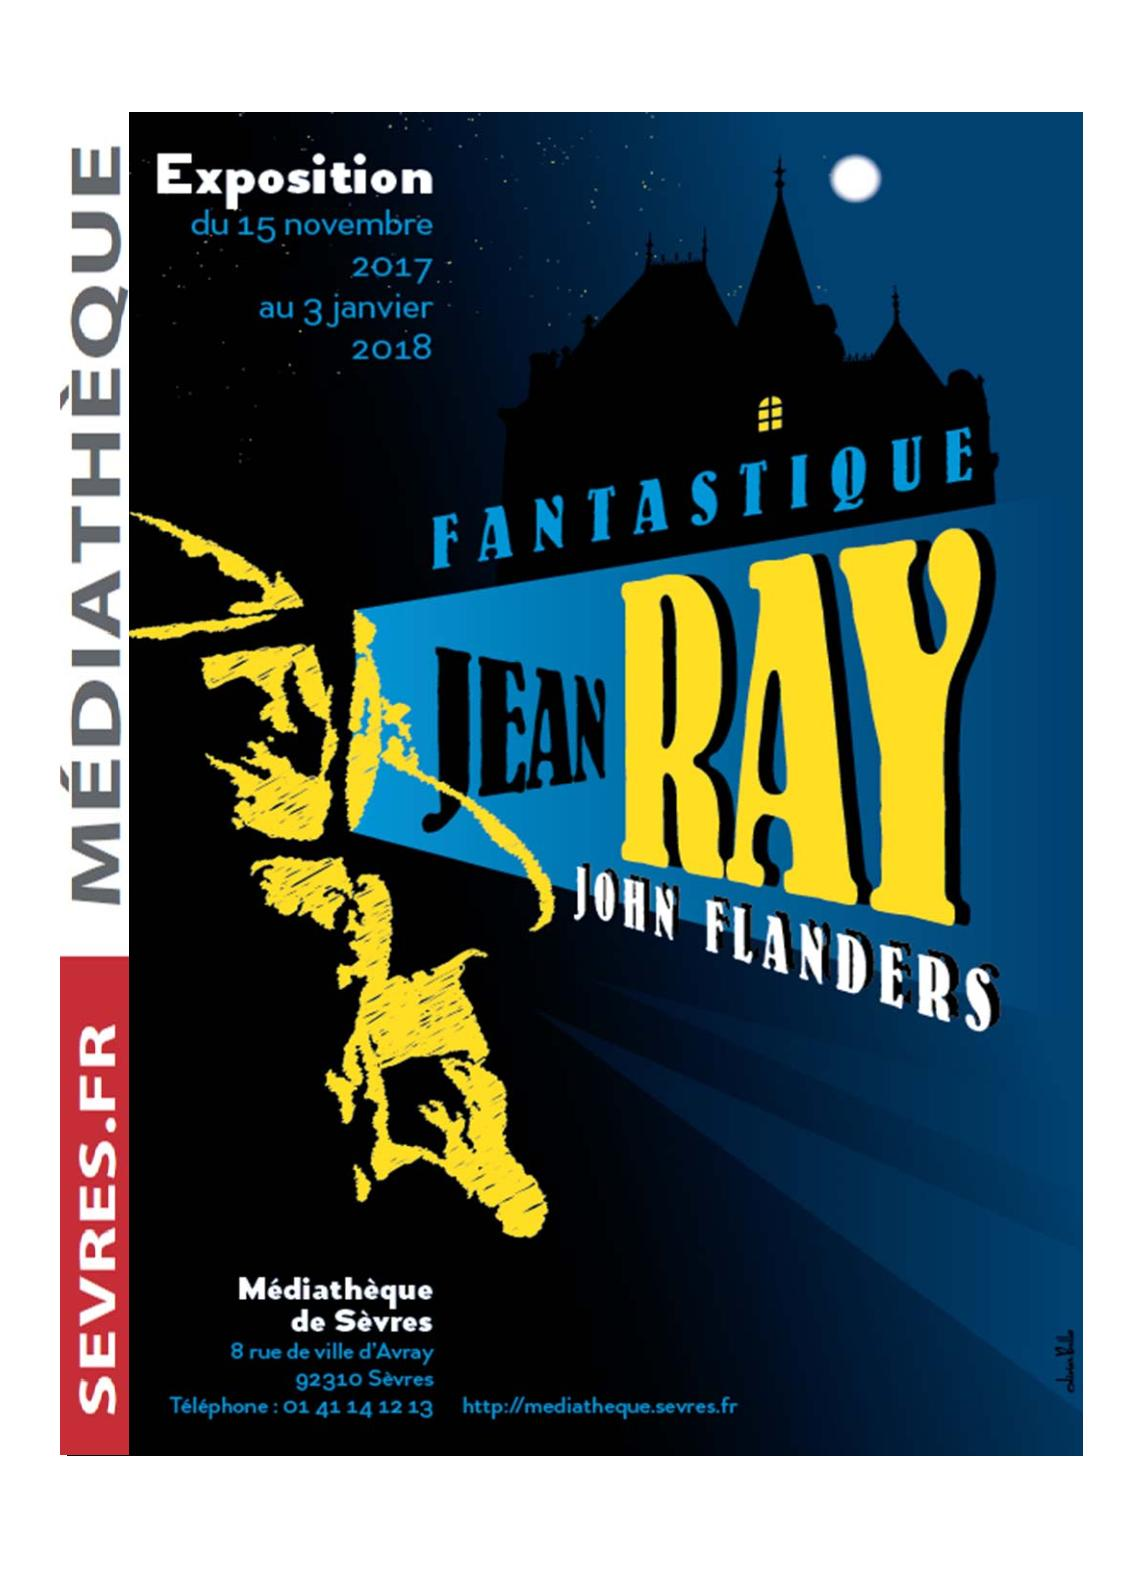 catalogue exposition Jean Ray 2017